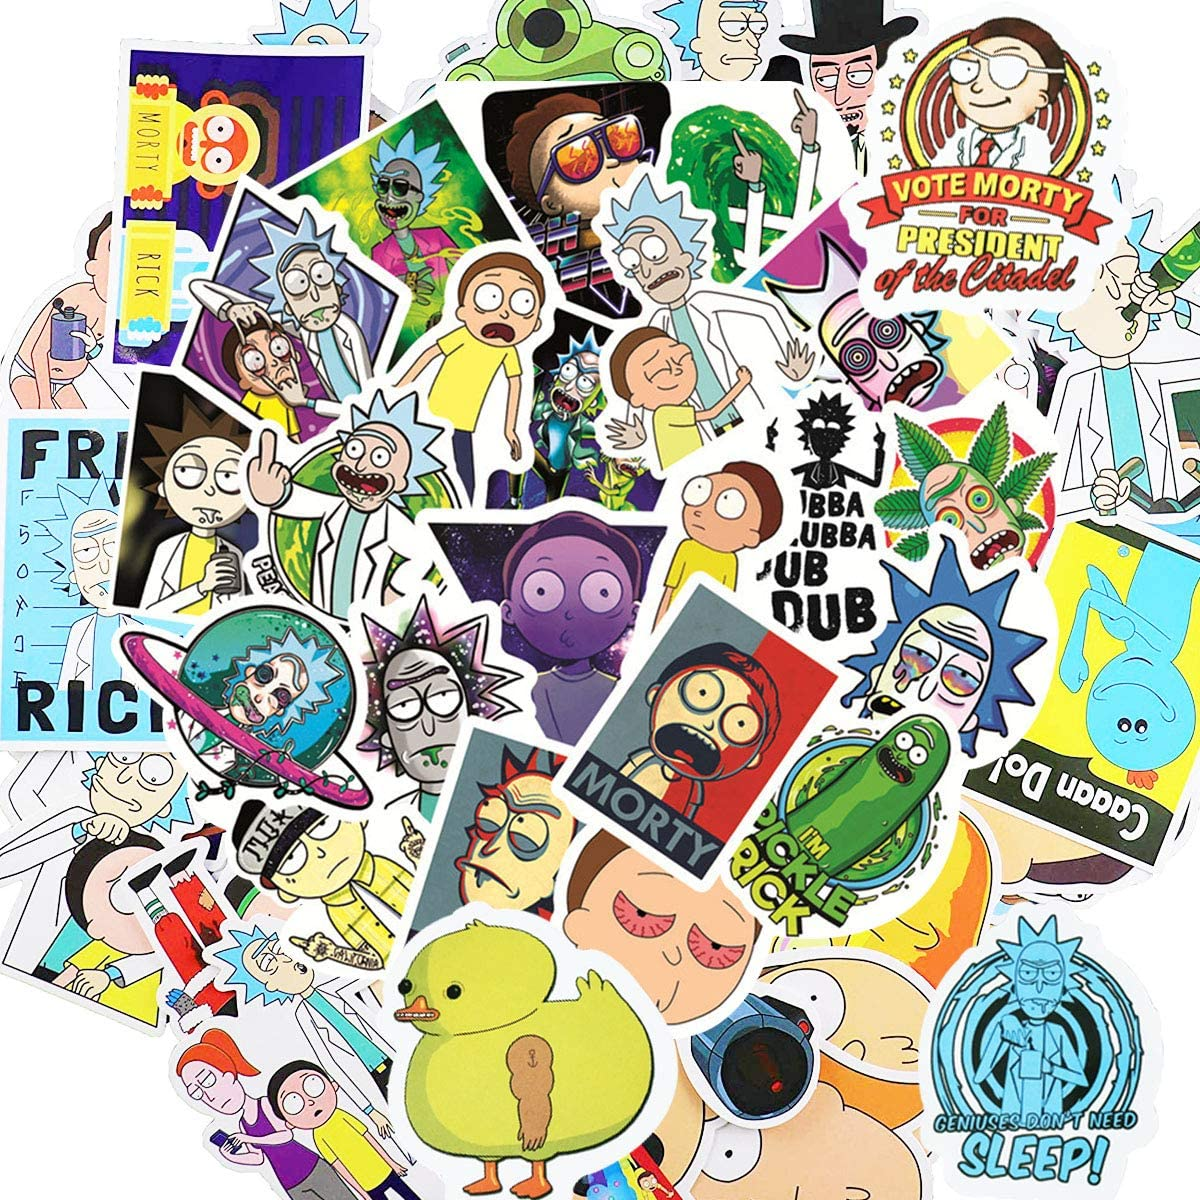 BATTER 100PCS Rick and Morty Stickes Laptop Sticker Waterproof Vinyl Stickers Car Sticker Motorcycle Bicycle Luggage Decal Graffiti Patches Skateboard Water Bottle Sticker